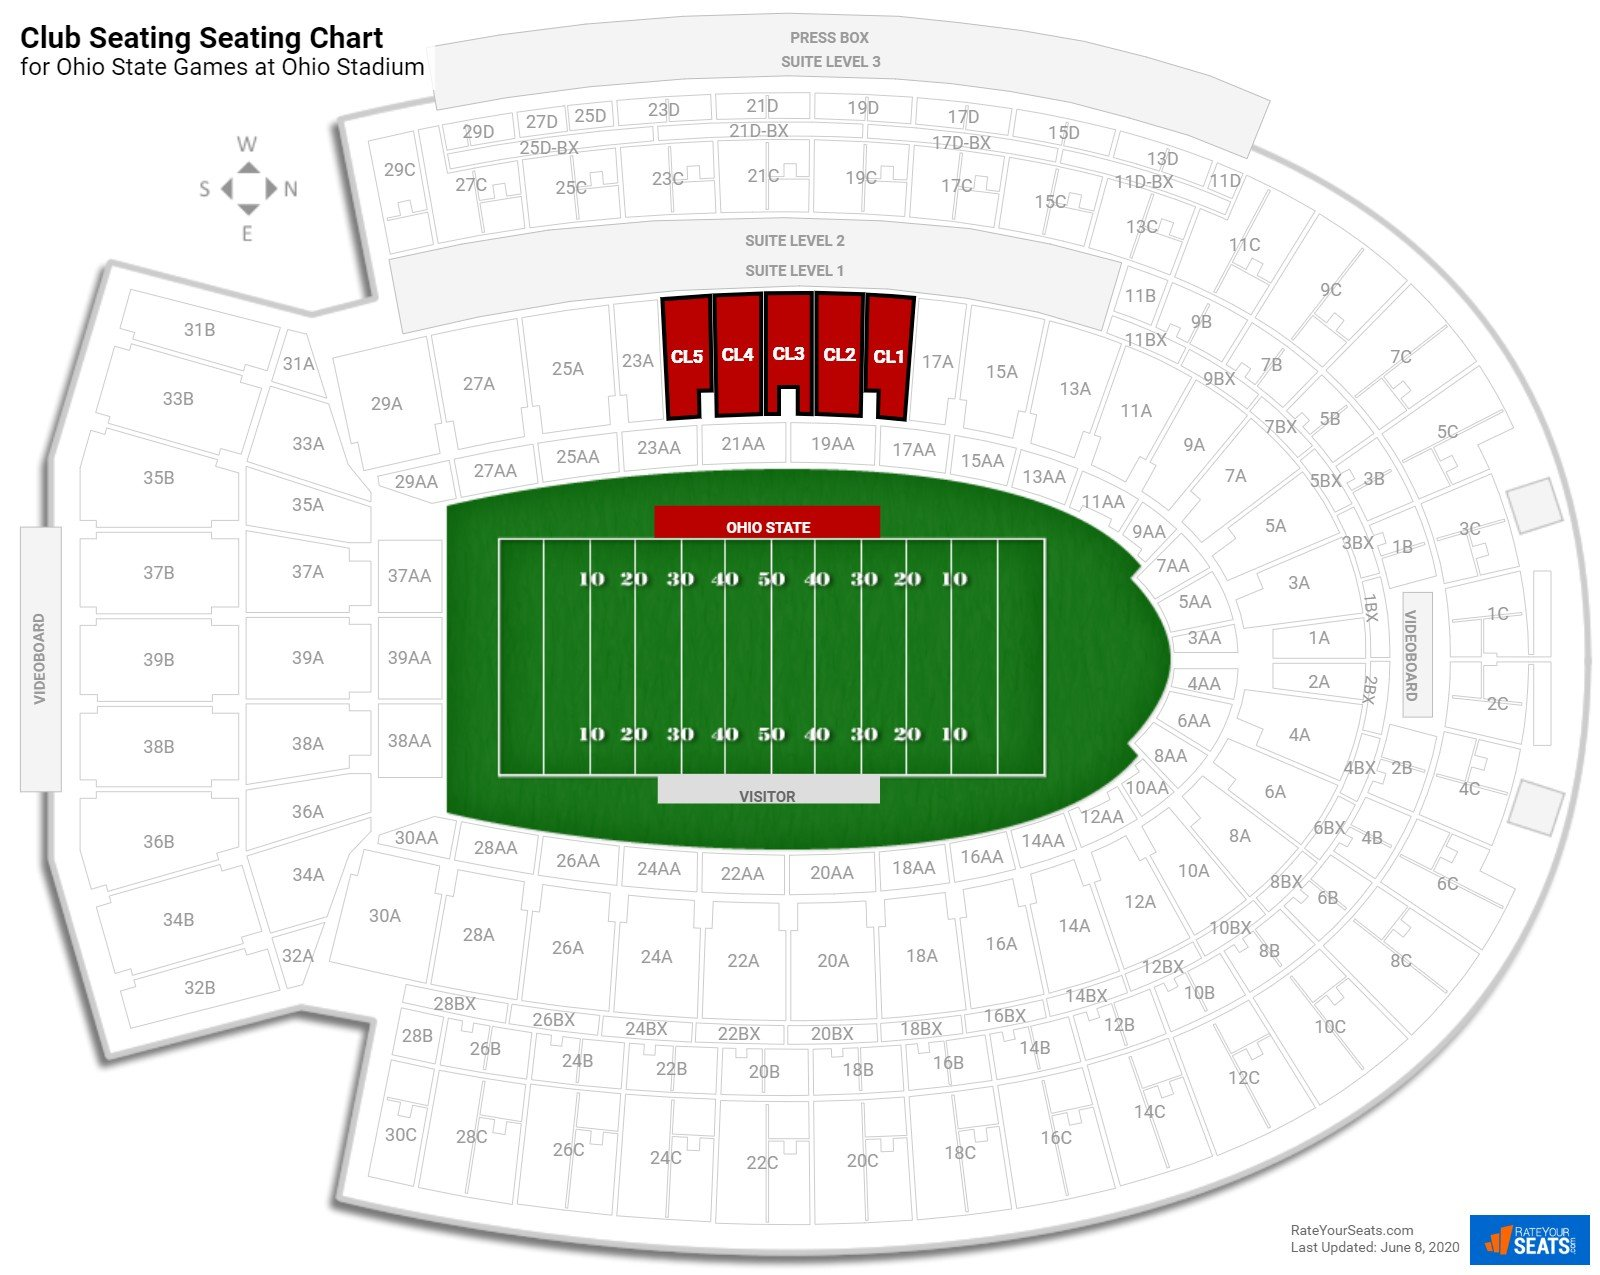 Ohio Stadium Club Seating seating chart